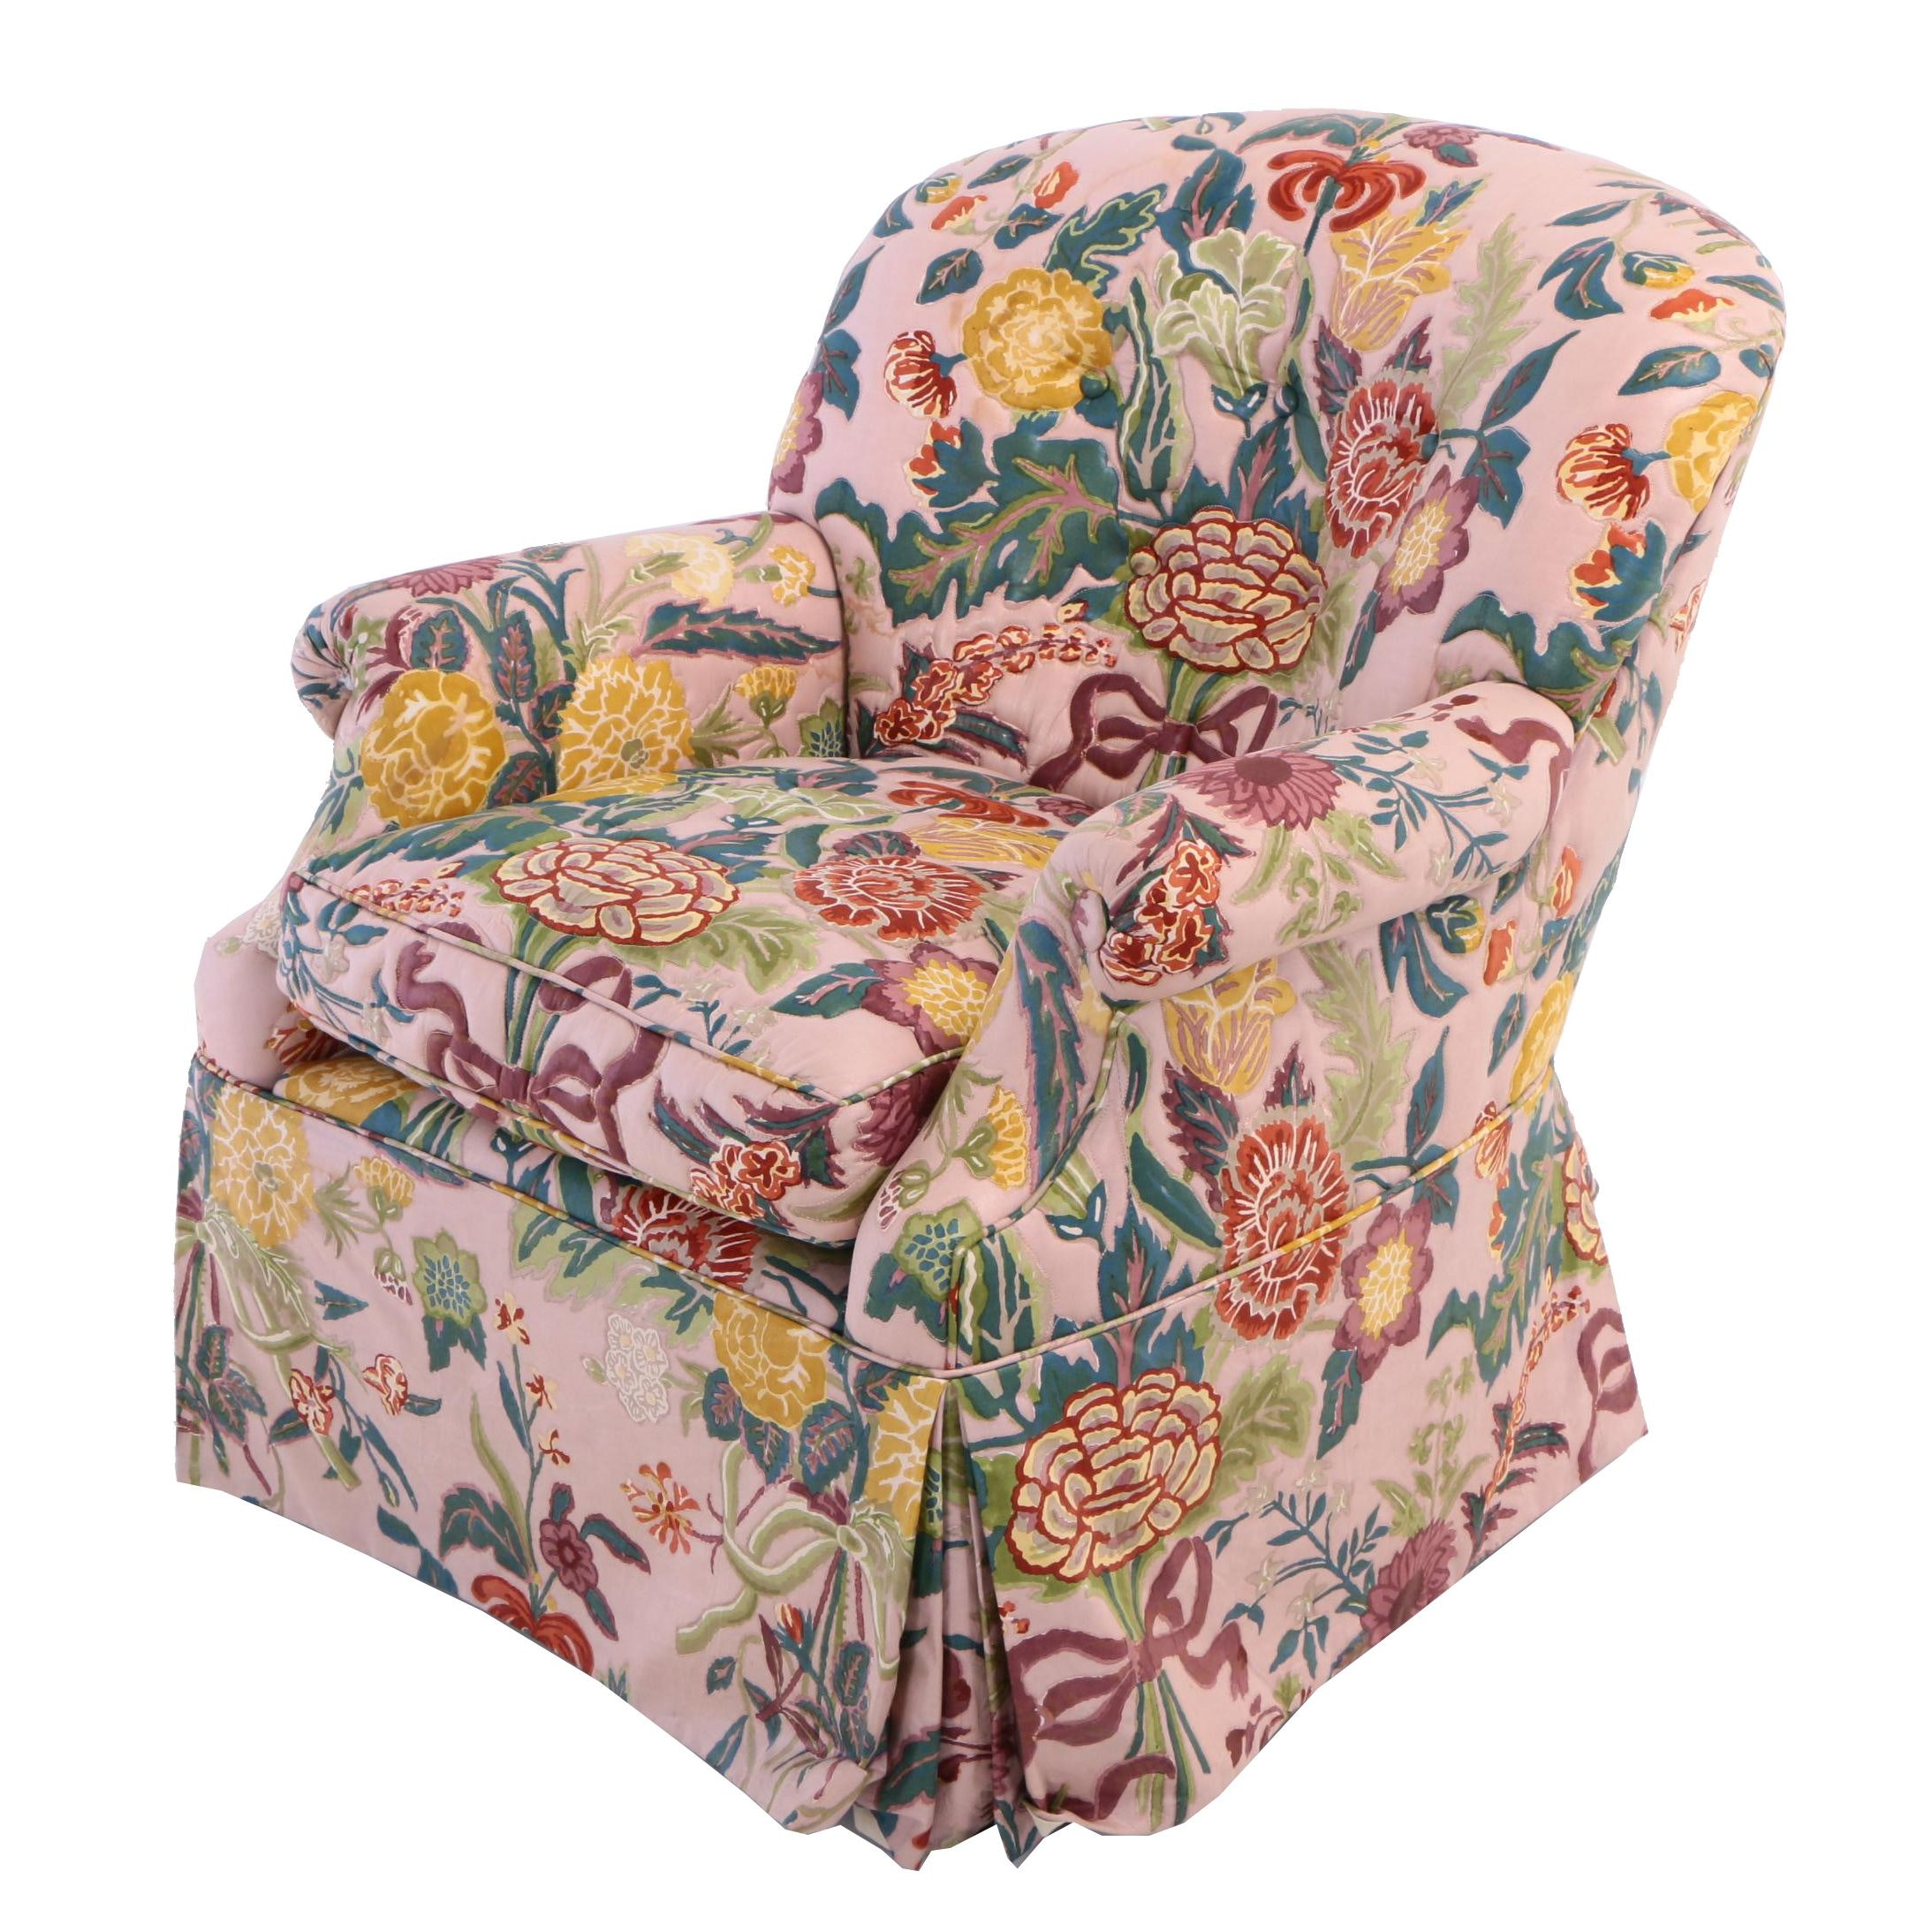 Button-Tufted and Floral-Upholstered Armchair, 20th Century